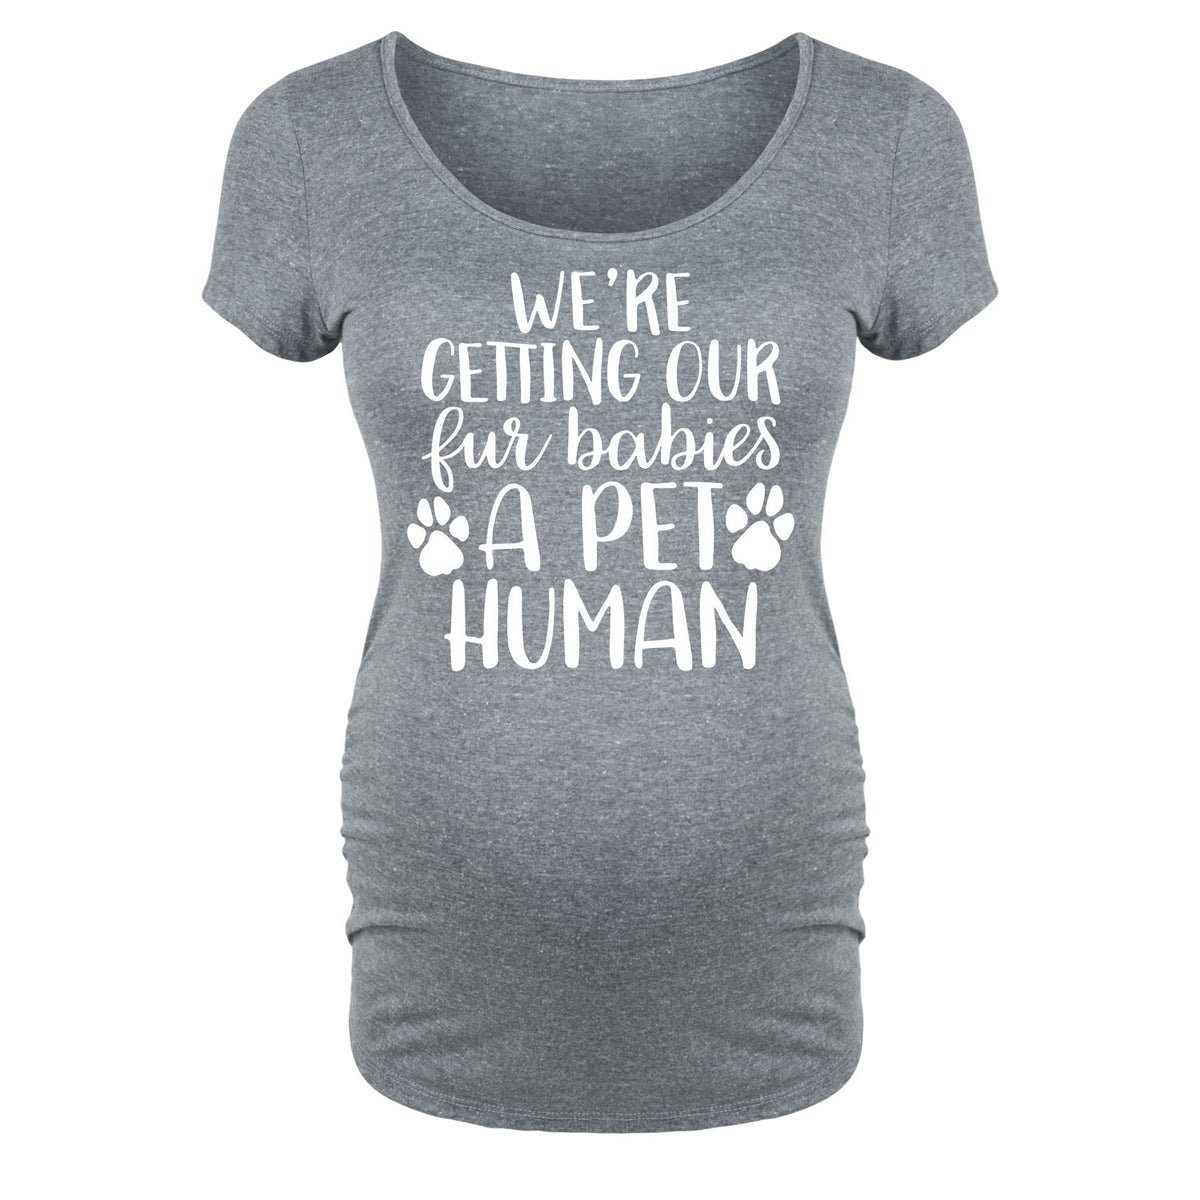 We're Getting Our Fur Babies A Pet Human - Maternity Short Sleeve T-Shirt